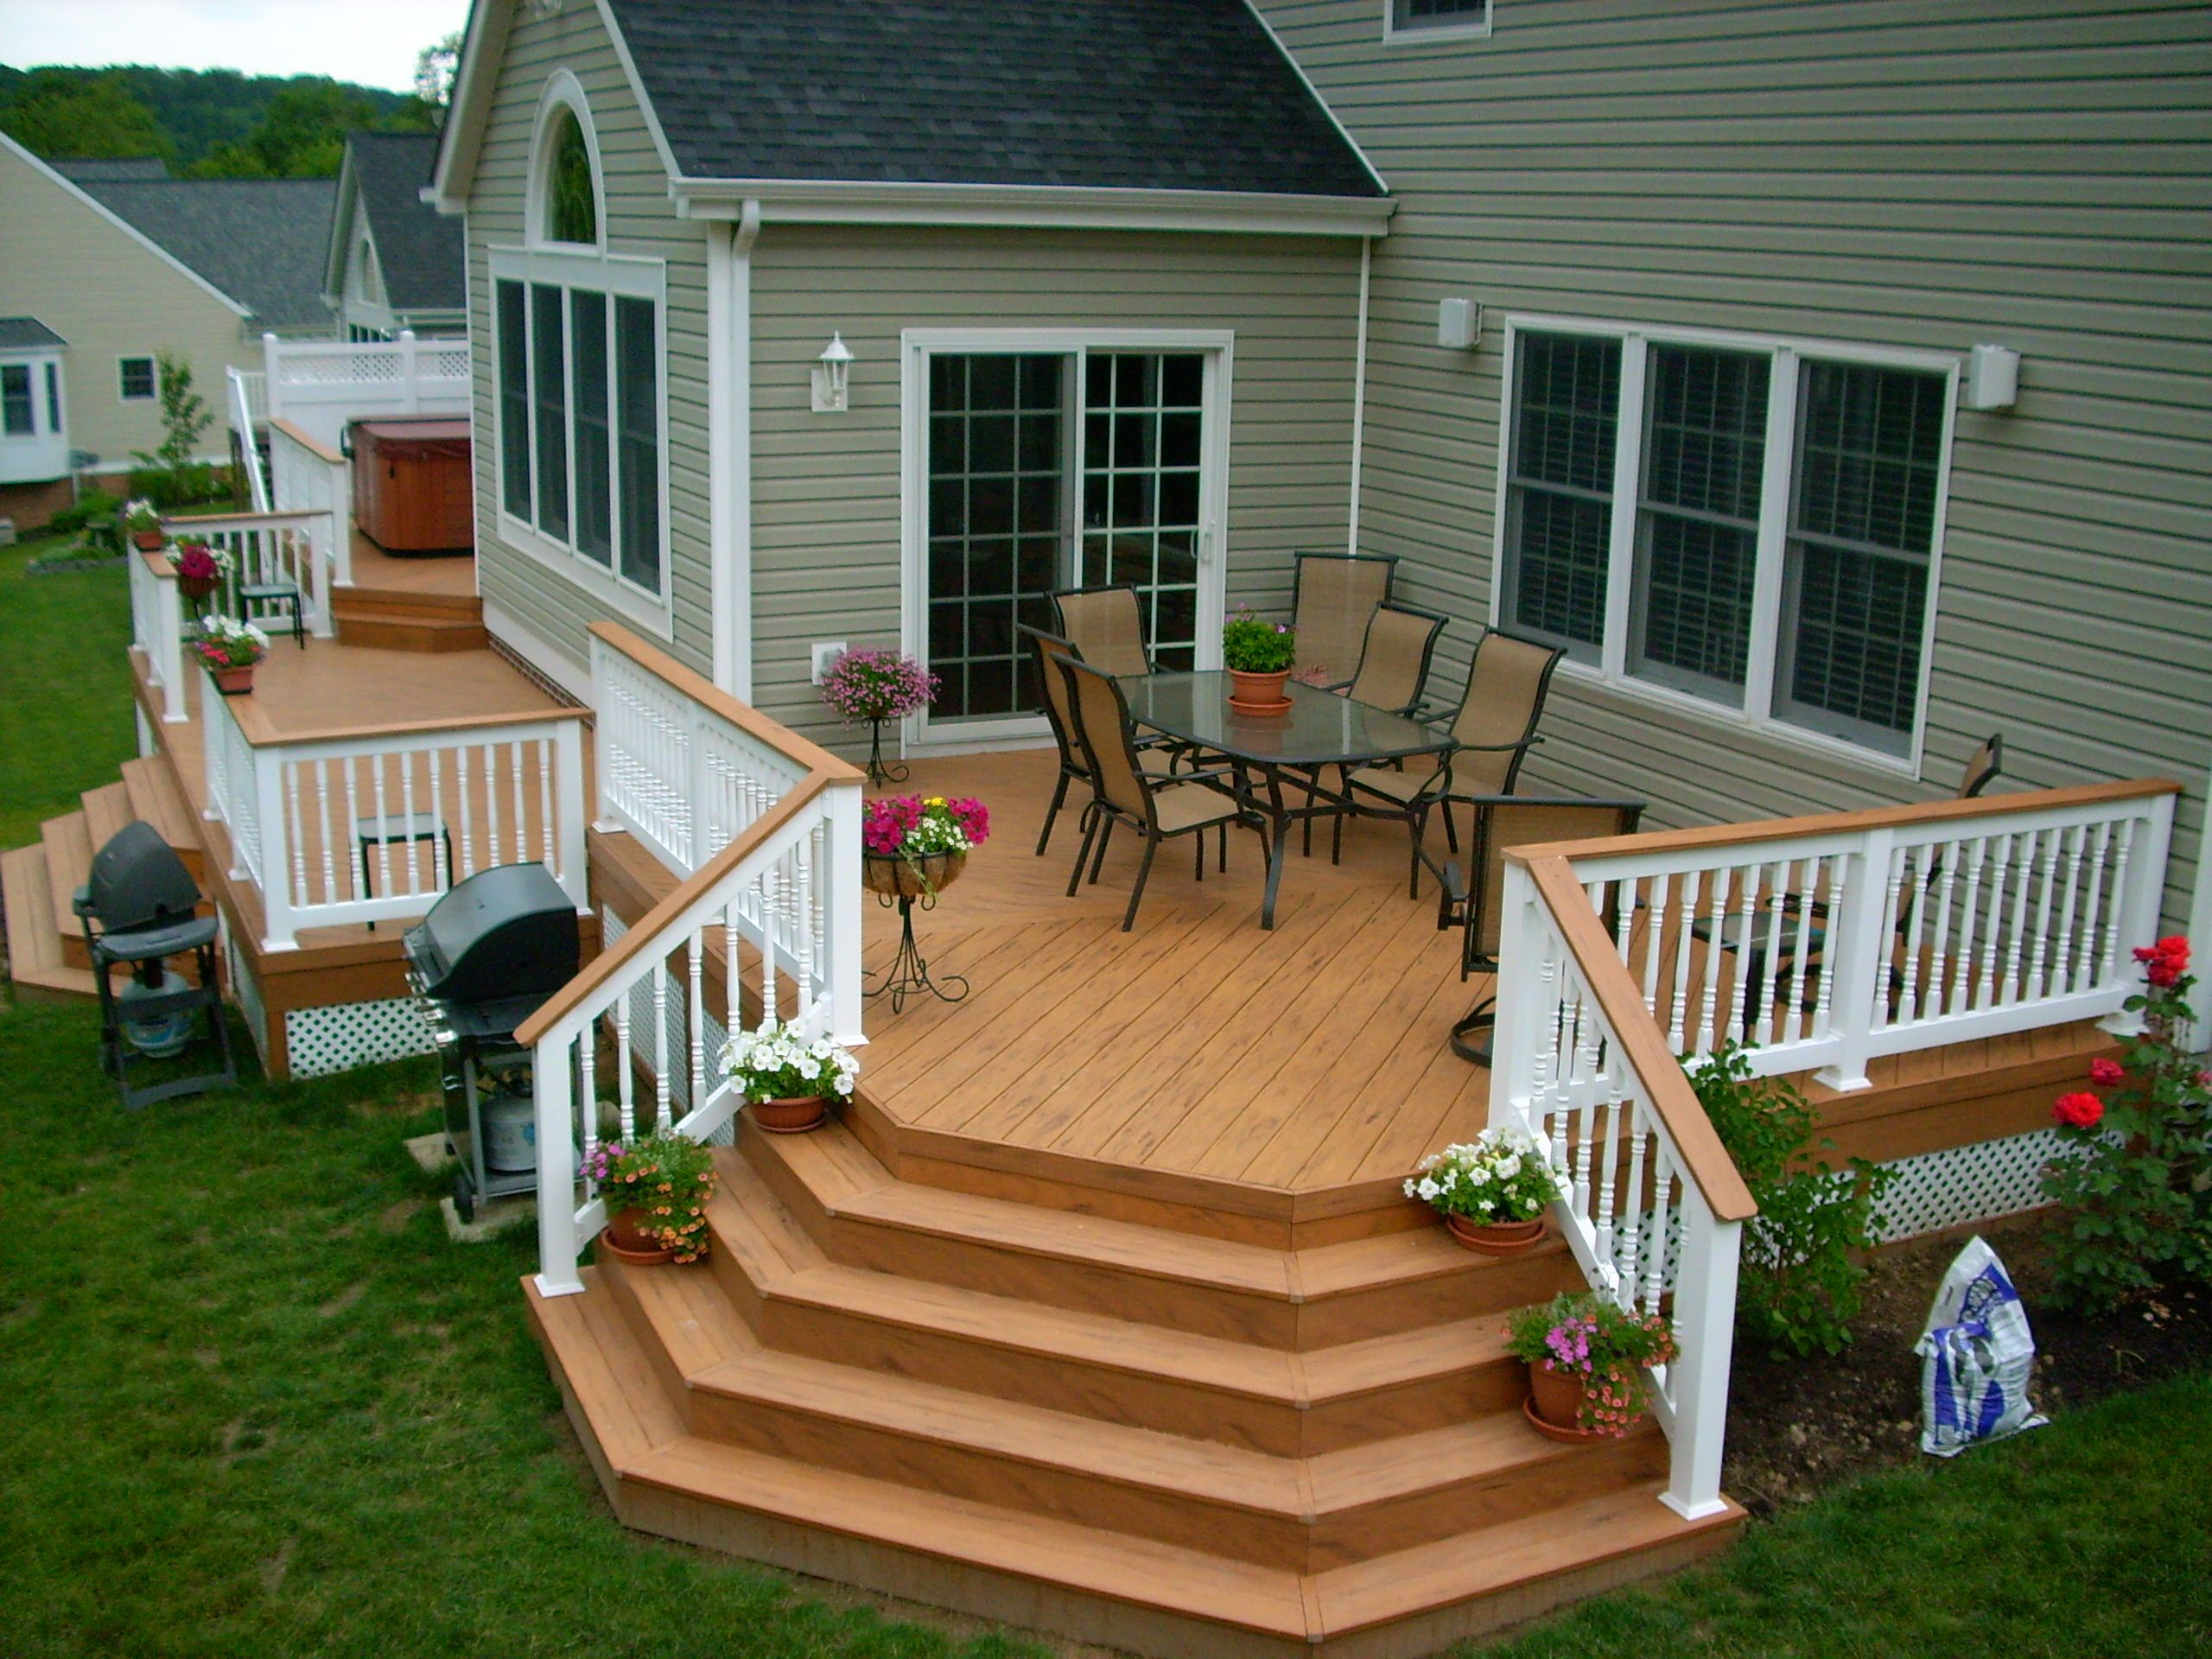 Creating a Great Home Deck that Lasts All-Year Round